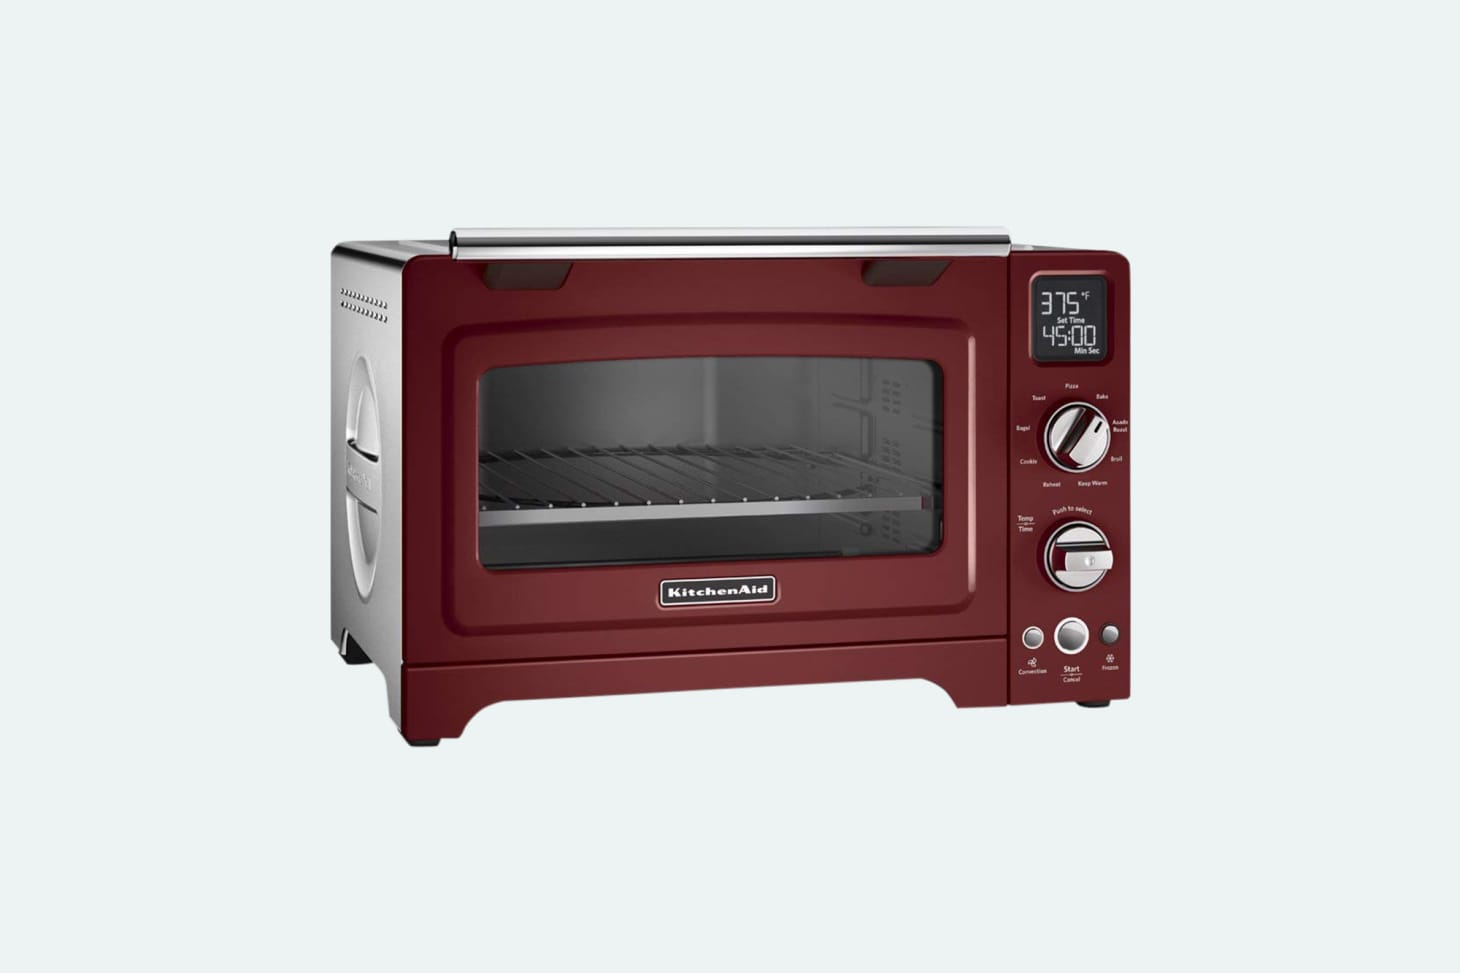 Best Toaster Oven Canada 2018